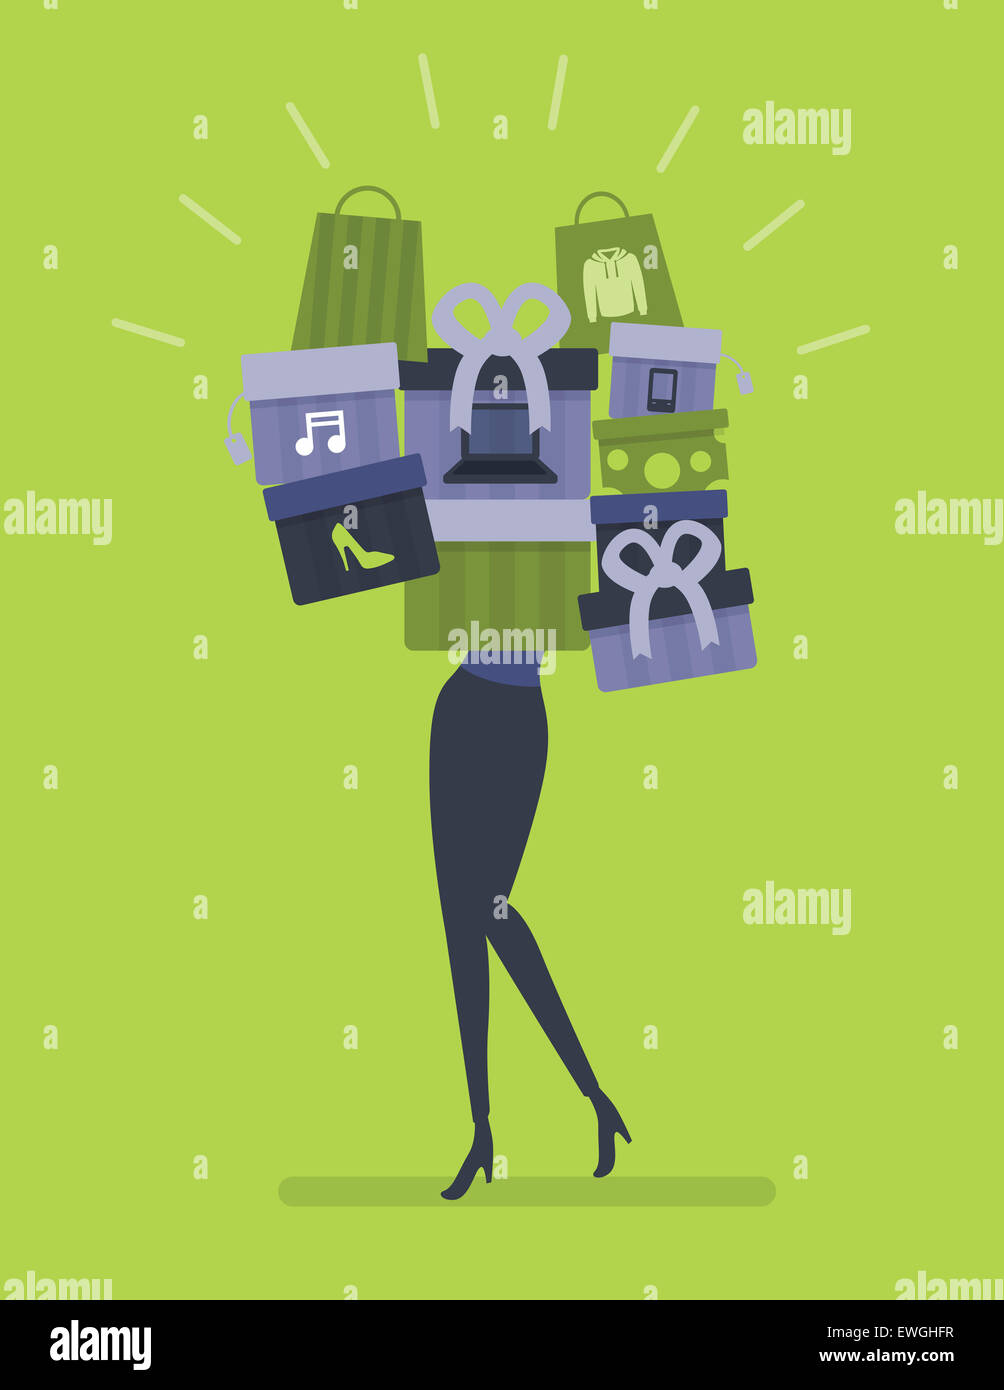 Illustration image of woman excess shopping - Stock Image